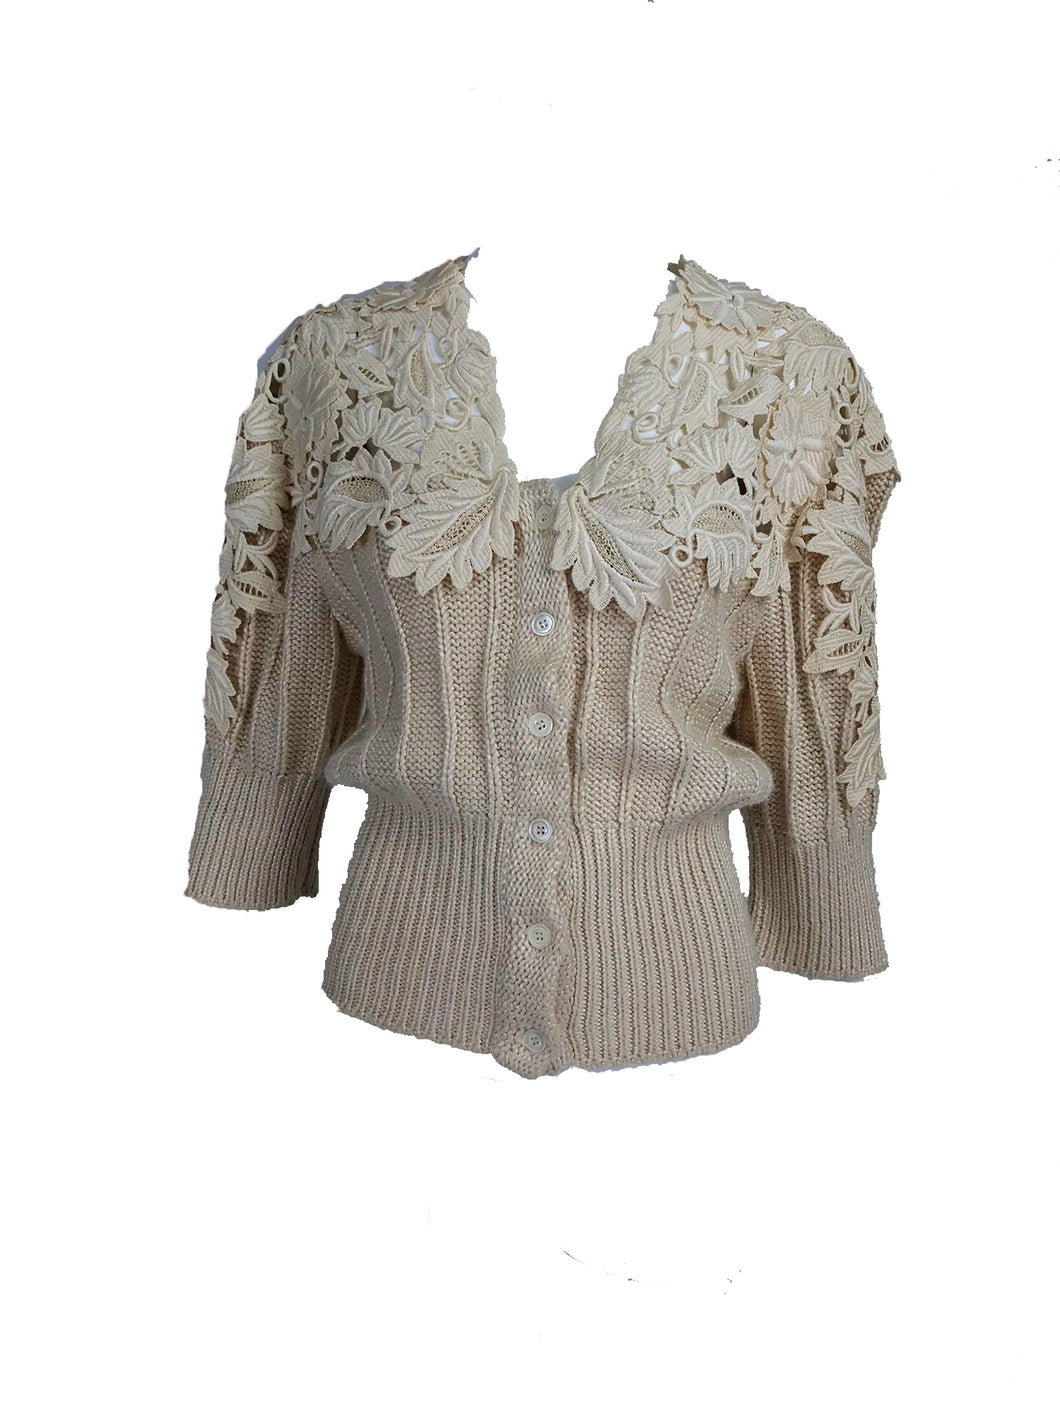 Vintage Chloe Karl Lagerfeld Cream Silk Lace Chunky Sweater 1980s